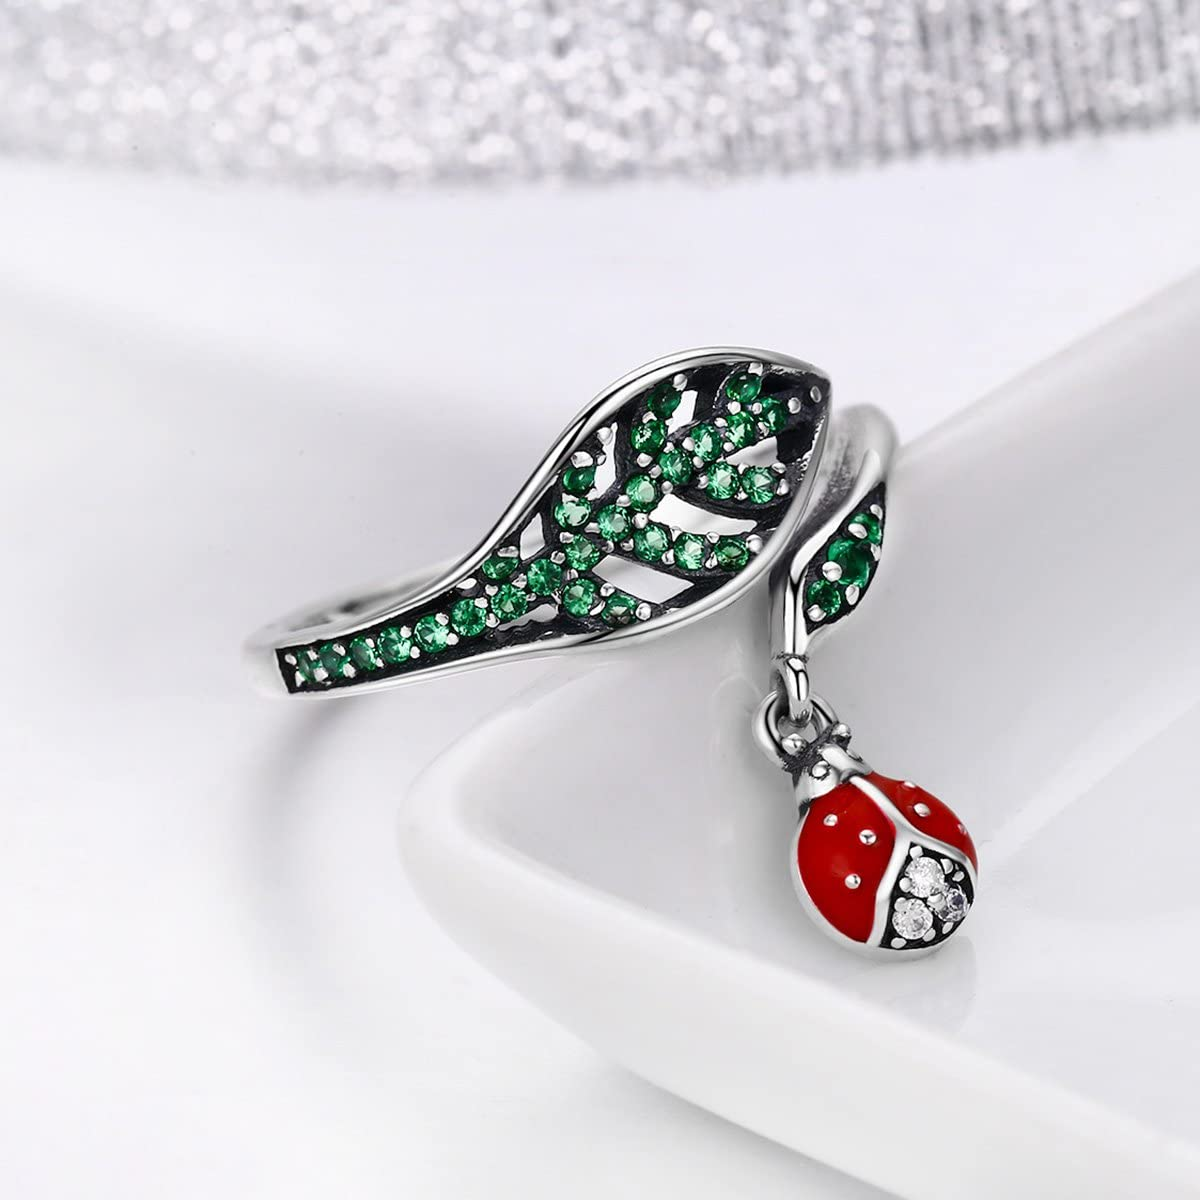 The Kiss Resting Ladybug Dangle in Tree Leaves 925 Sterling Silver Adjustable Ring Green CZ /& Red Enamel